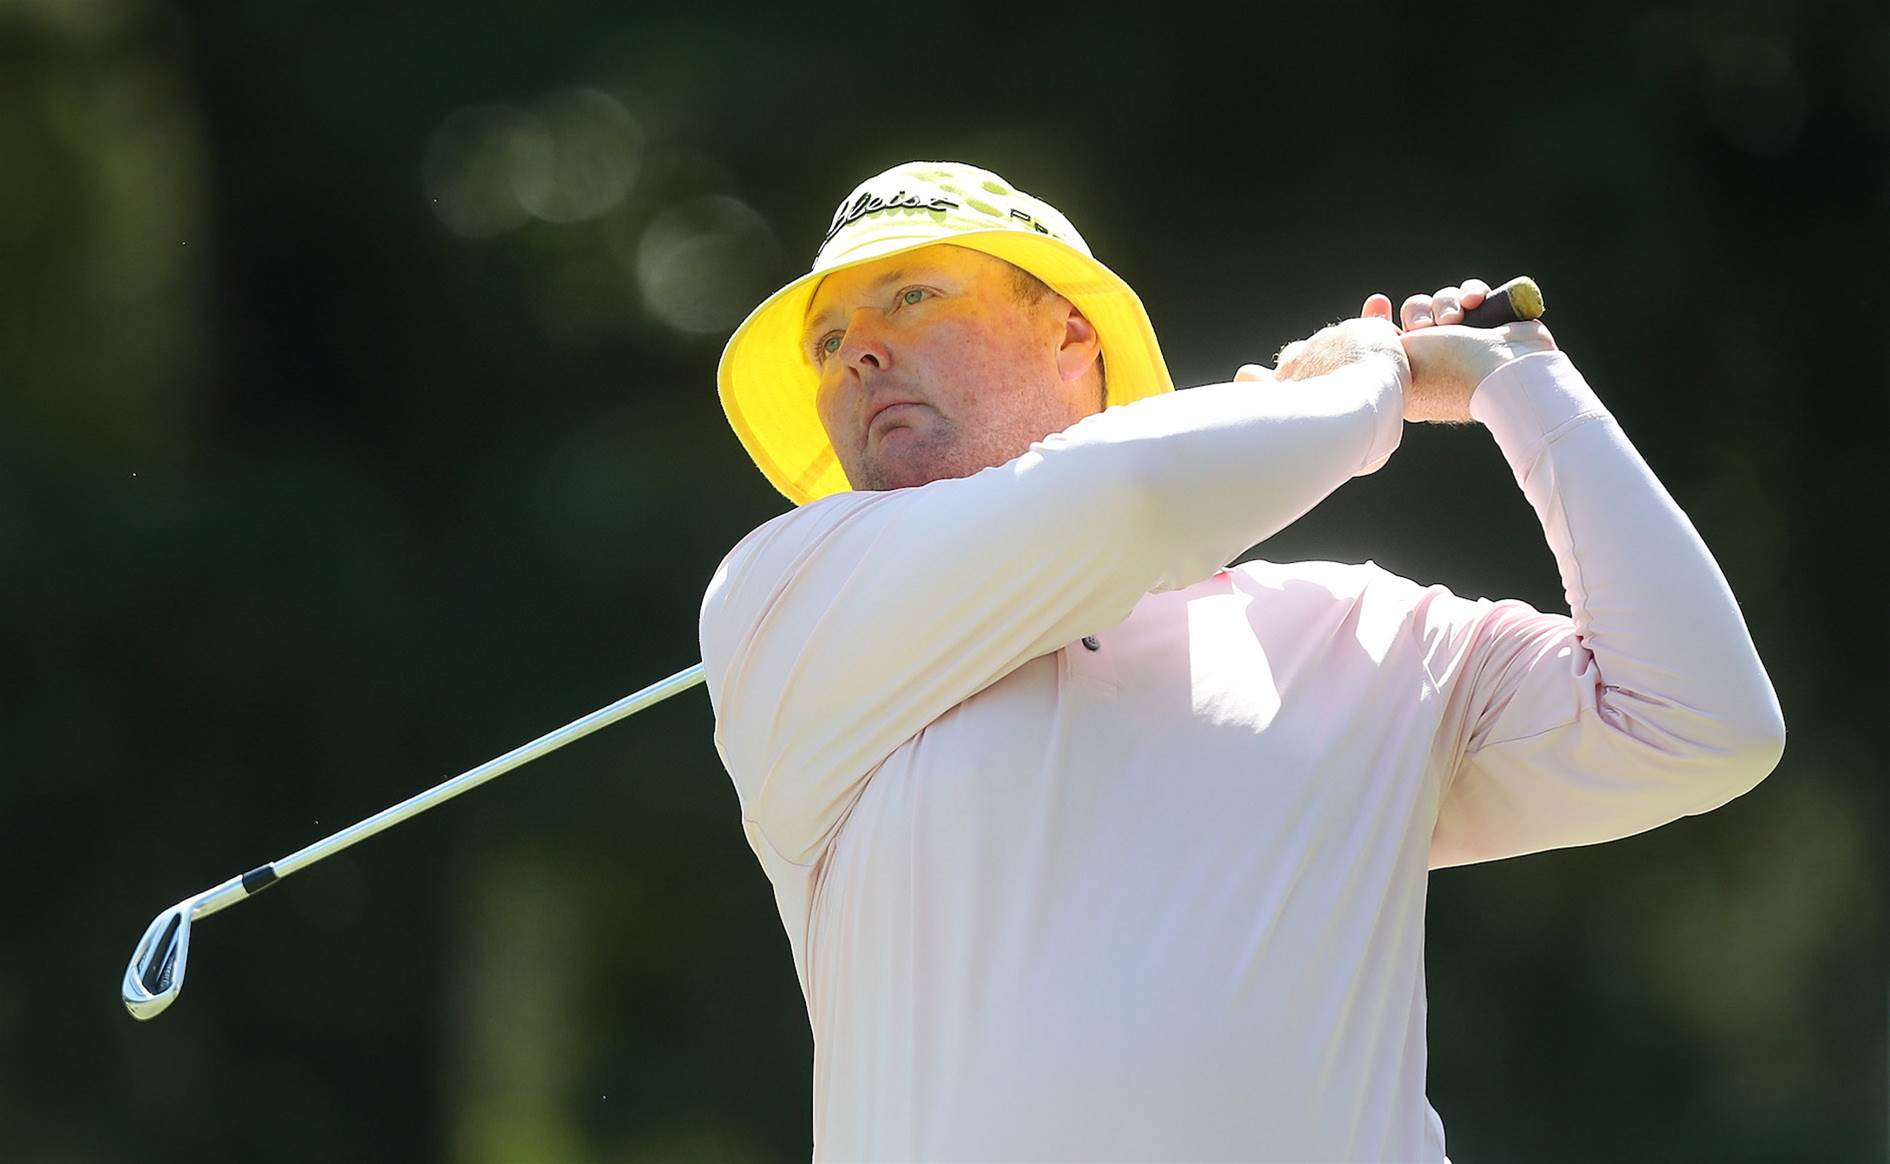 VIDEO: Get well soon Jarrod Lyle